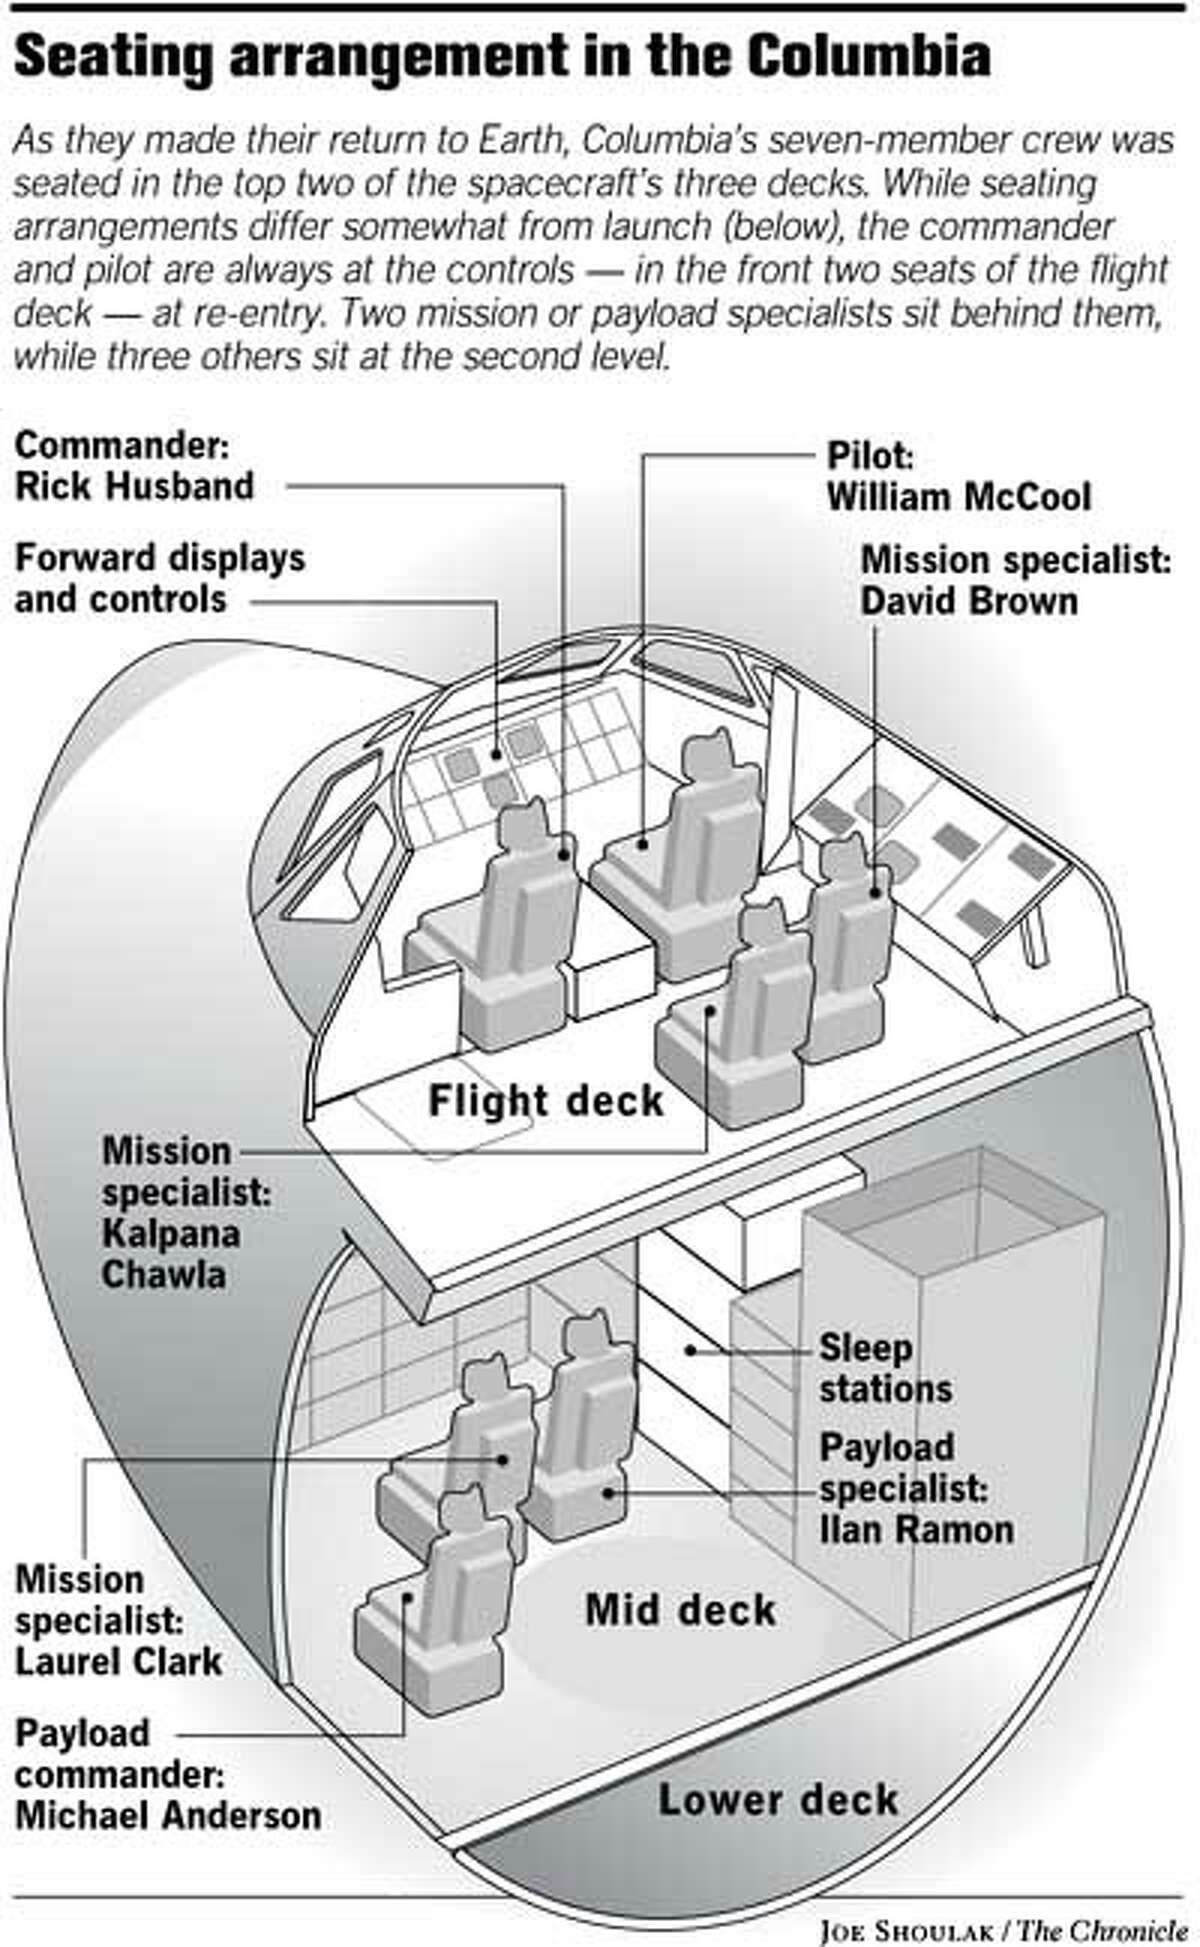 Seating Arrangement in Columbia. Chronicle graphic by Joe Shoulak